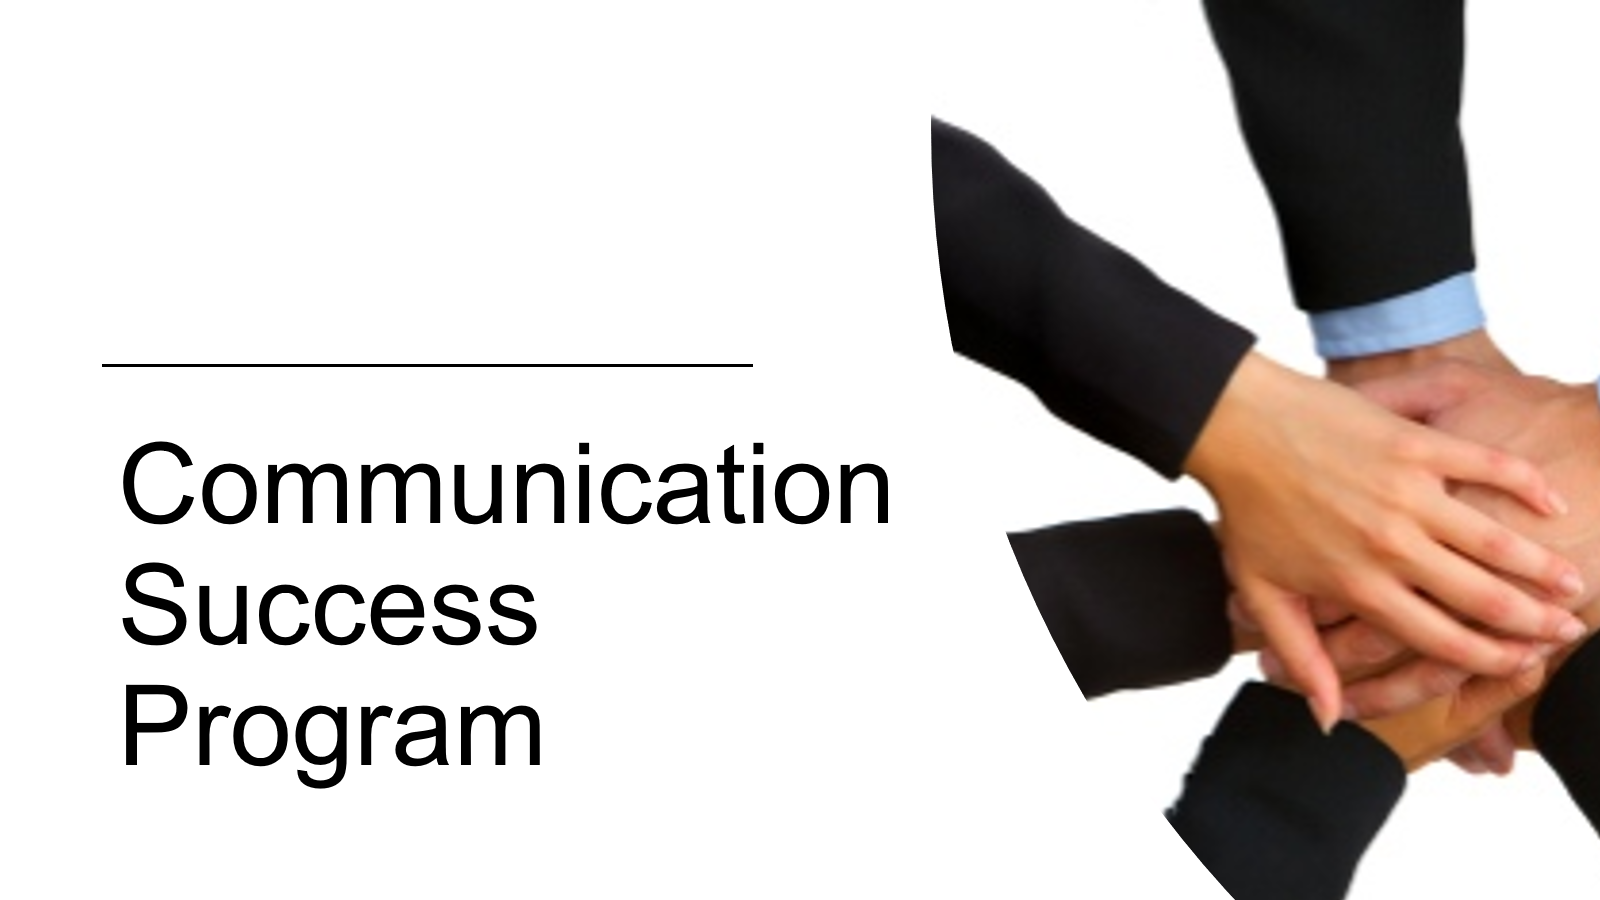 (CSP) - Communication Success Program